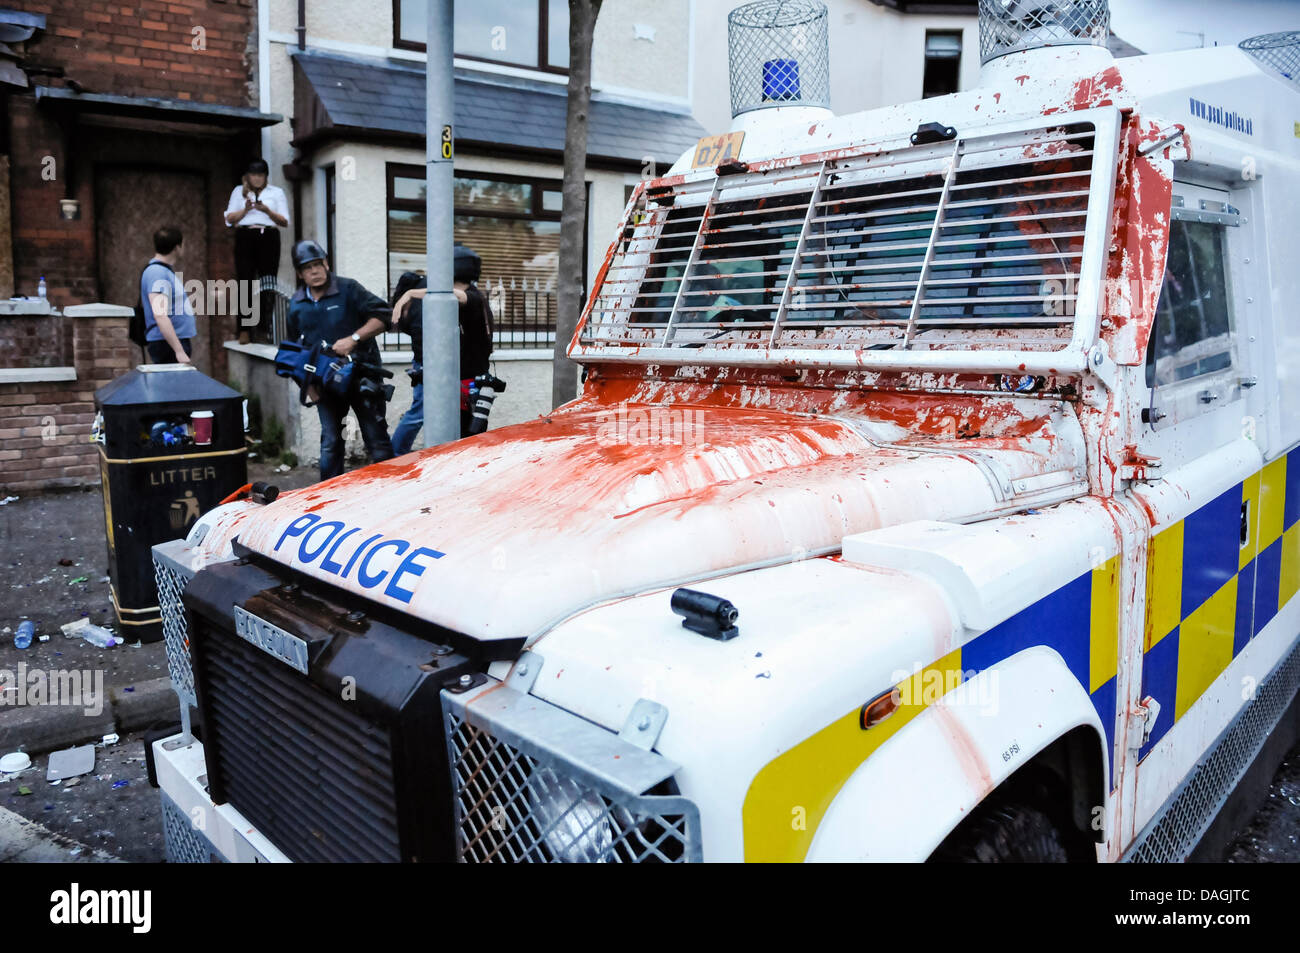 Belfast, Northern Ireland, 12th July 2013 - A PSNI Landrover has paint thrown at it as Loyalists riot on Woodvale - Stock Image